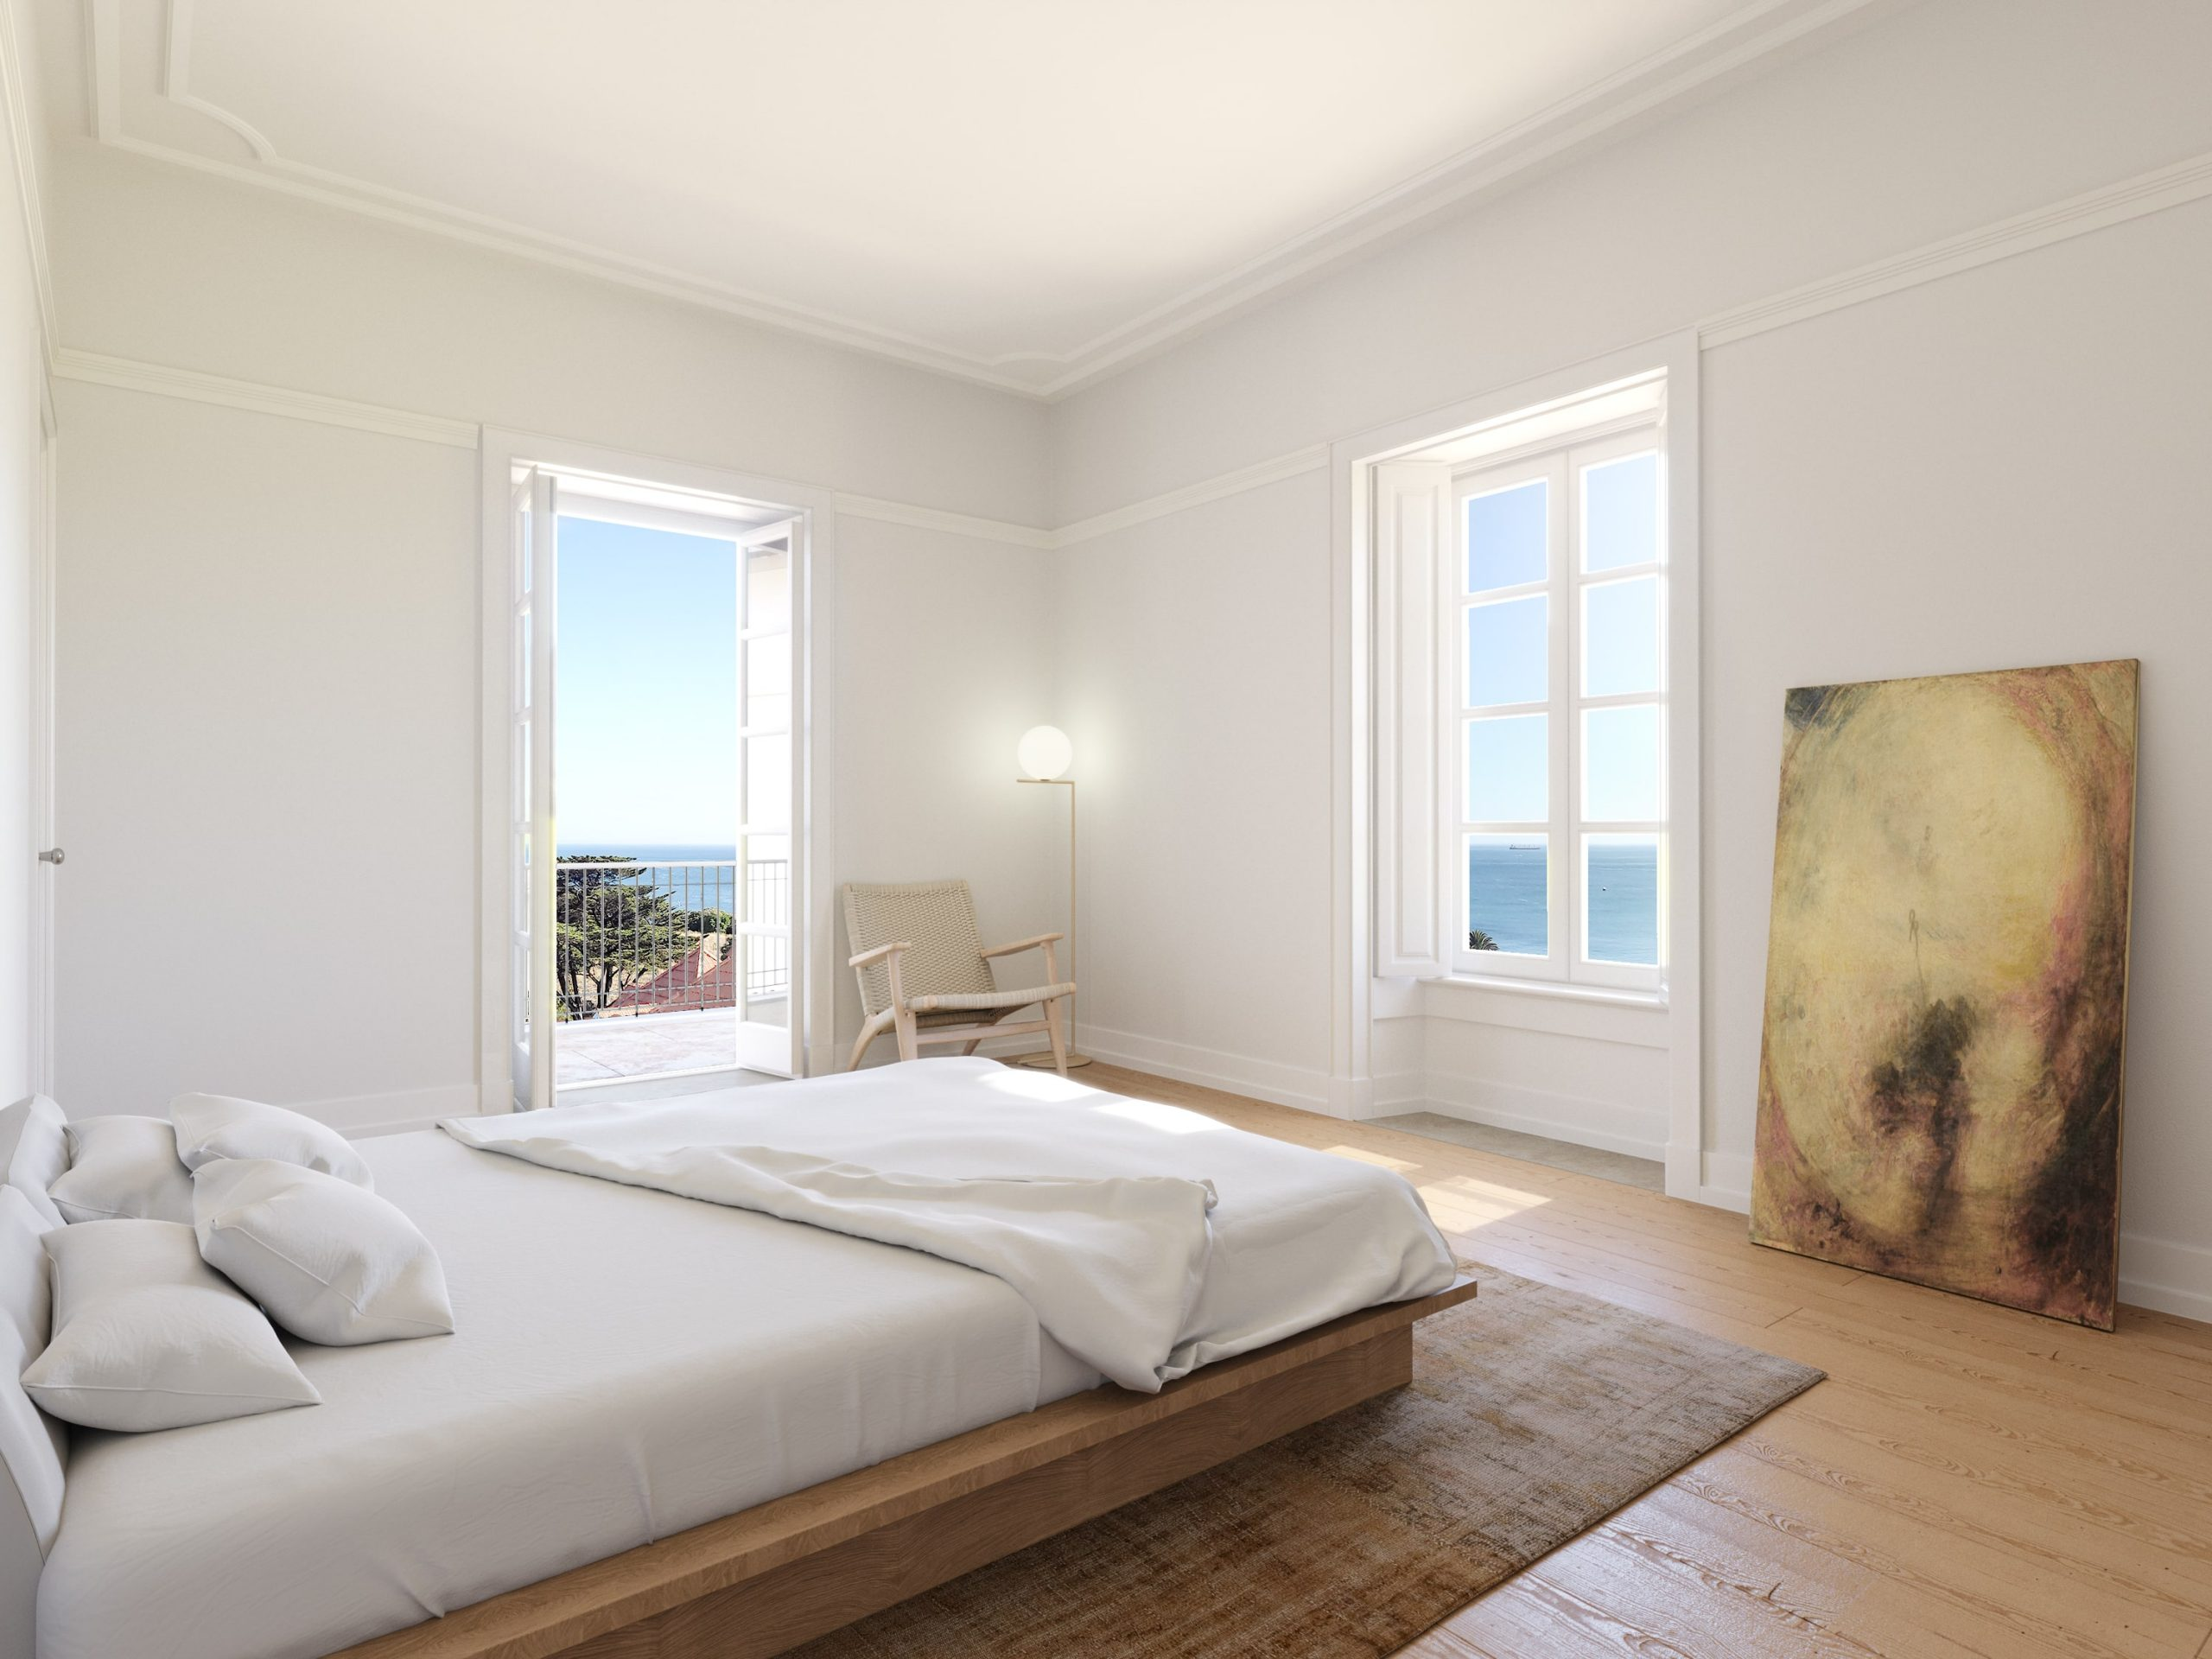 //vpva.pt/wp-content/uploads/2020/03/vpva.pt-3d-render-archviz-architecture-project-design-arquitectura-arx-nuno-nascimento-arquitectos-estoril-villa-julia-quarto-bedroom-scaled.jpg